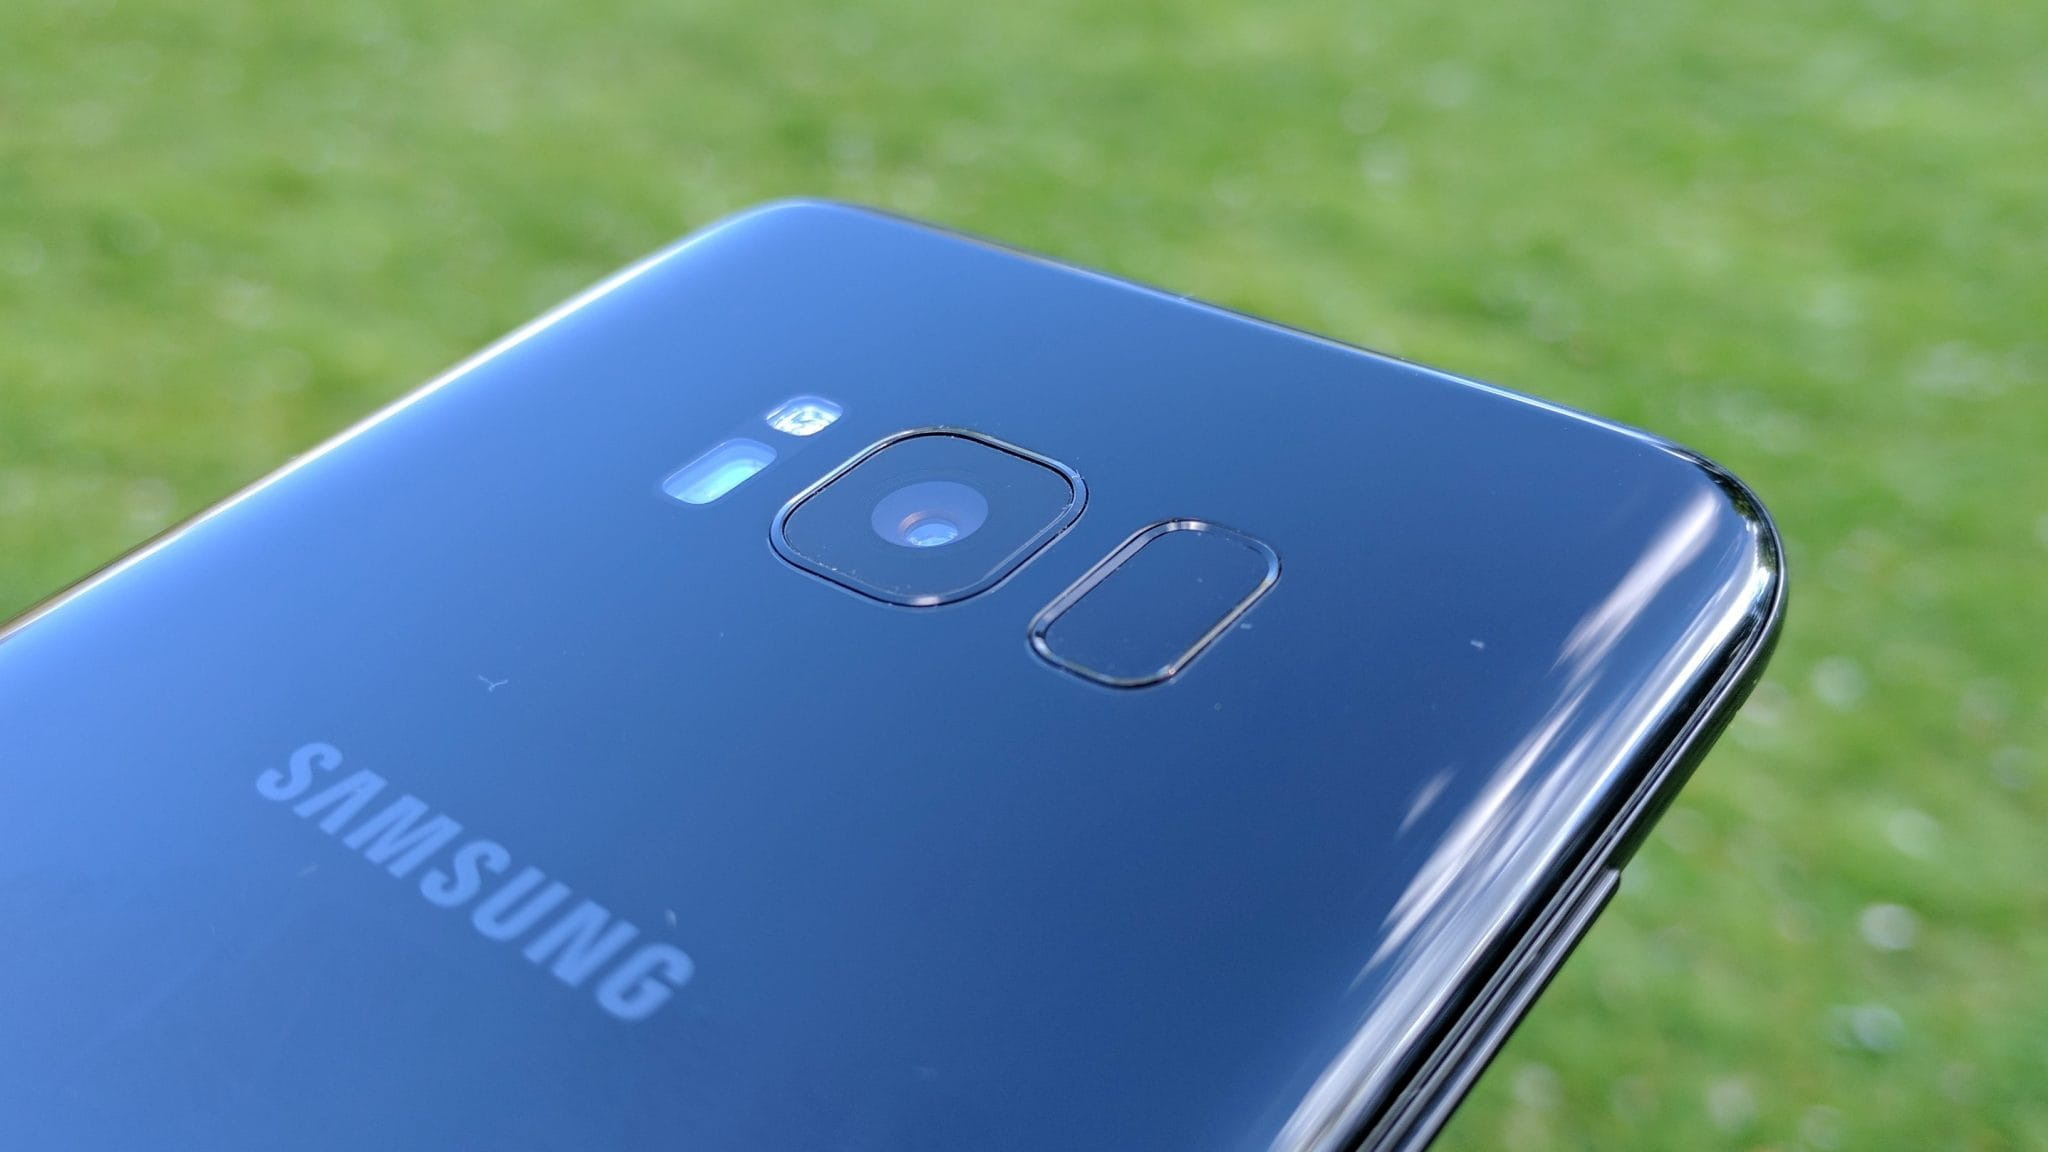 Advantages And Disadvantages Of Samsung Galaxy S8 And S8 Plus 5